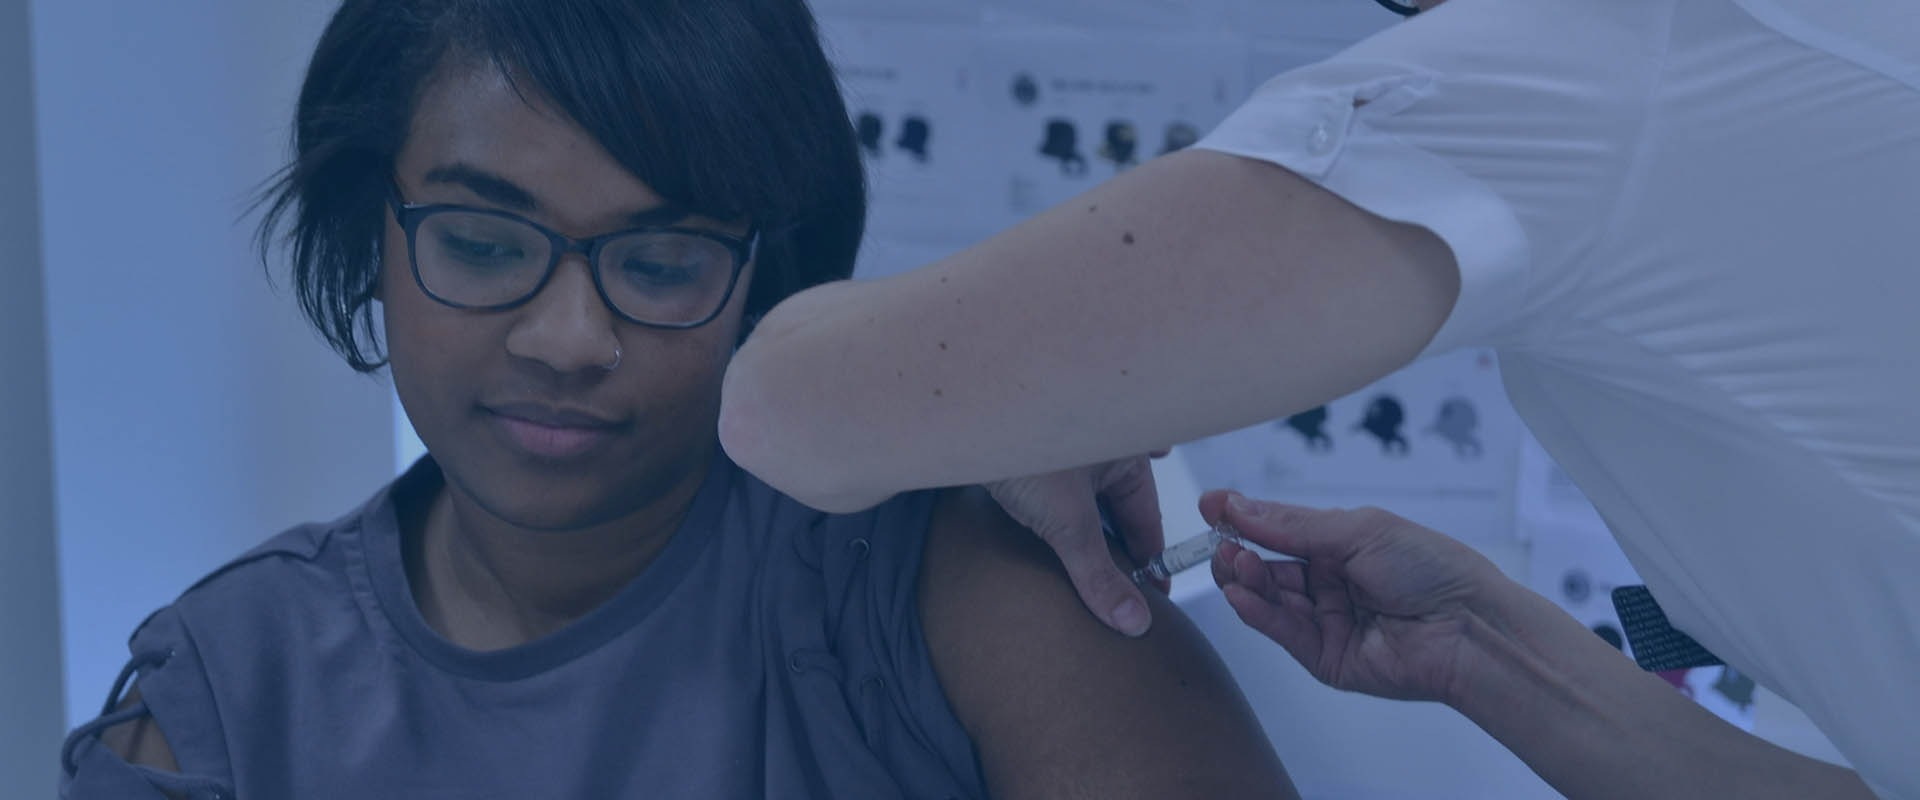 Employee receives flu vaccine at workplace flu clinic